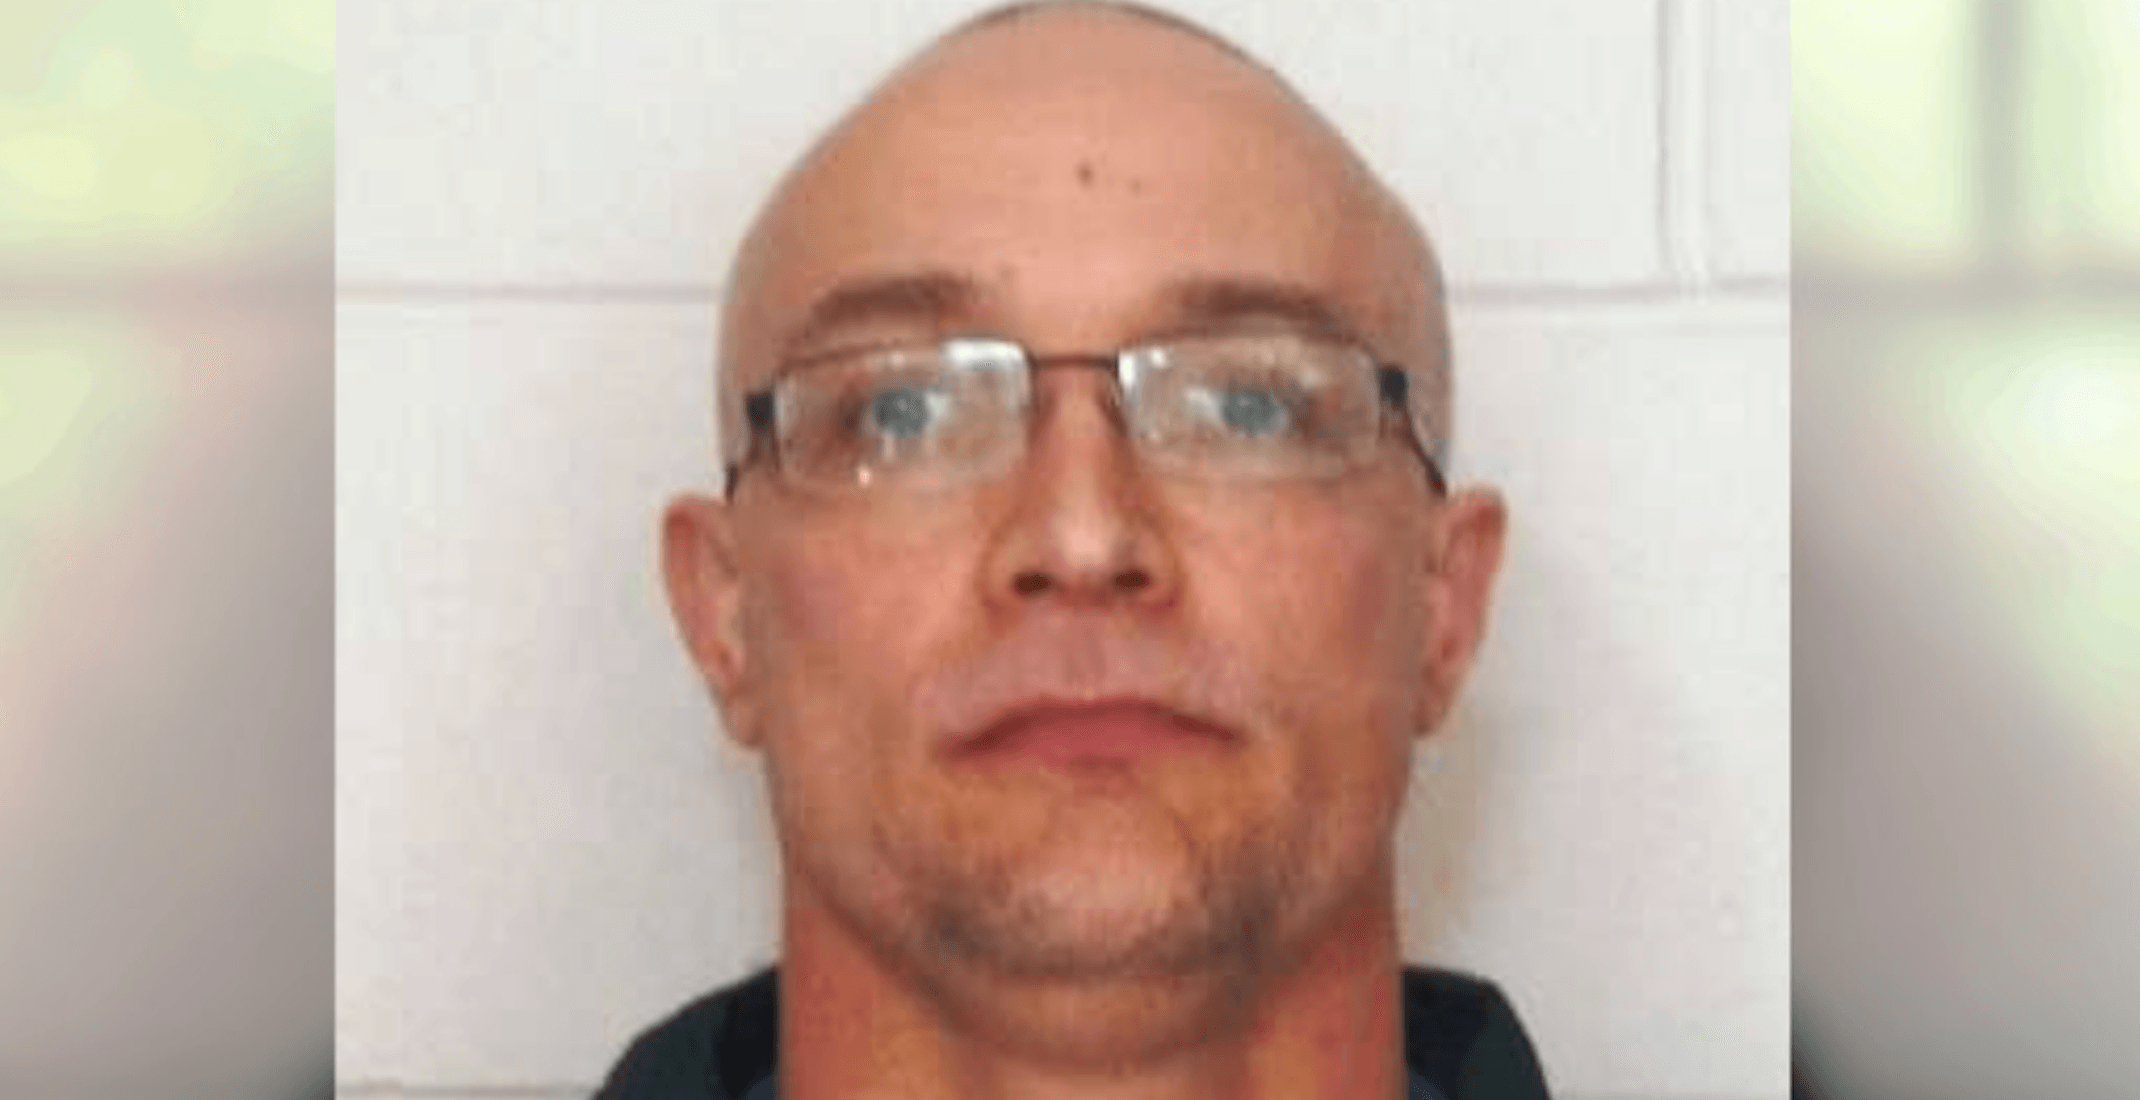 Vancouver Police search for high-risk sex offender who